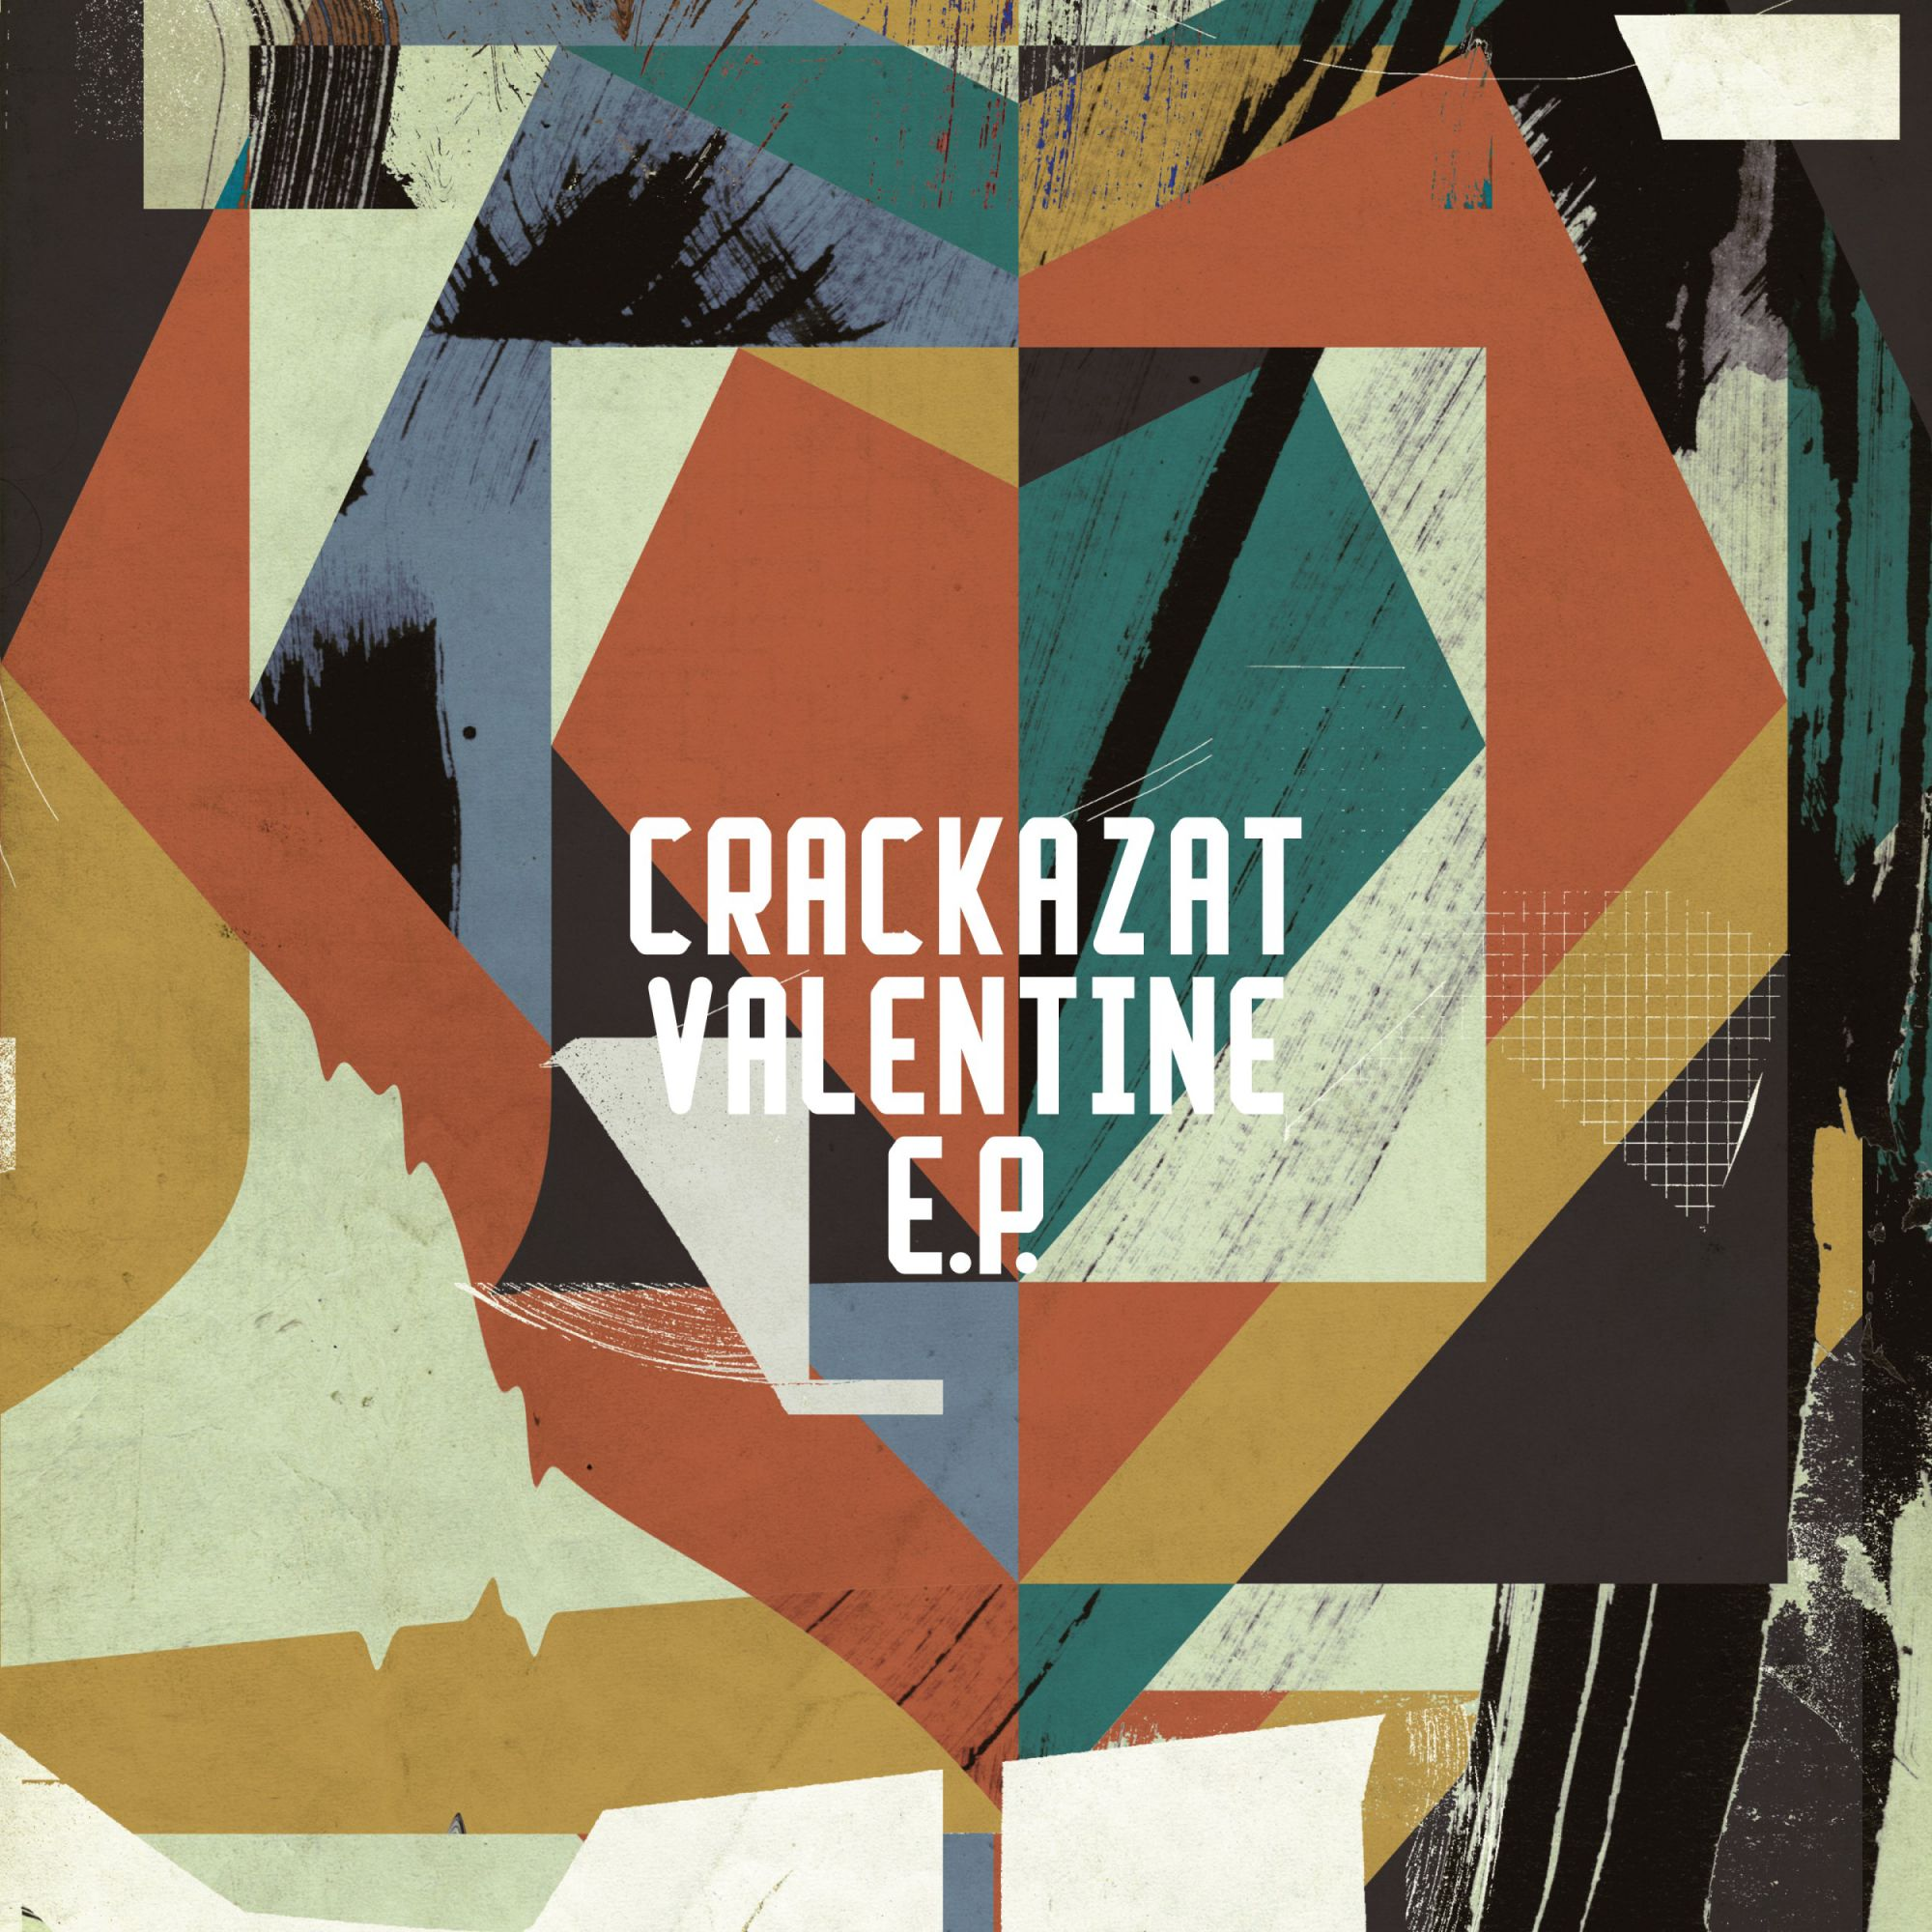 Crackazat - Valentine EP (Inc. Patrice Scott Remix)